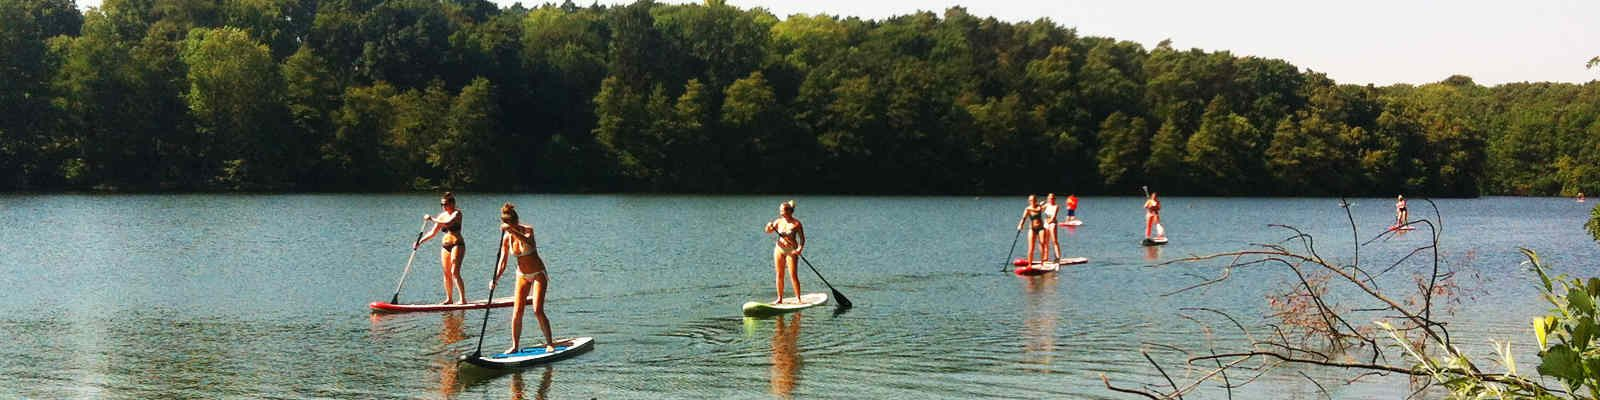 stand-up-paddling-berlin-klein